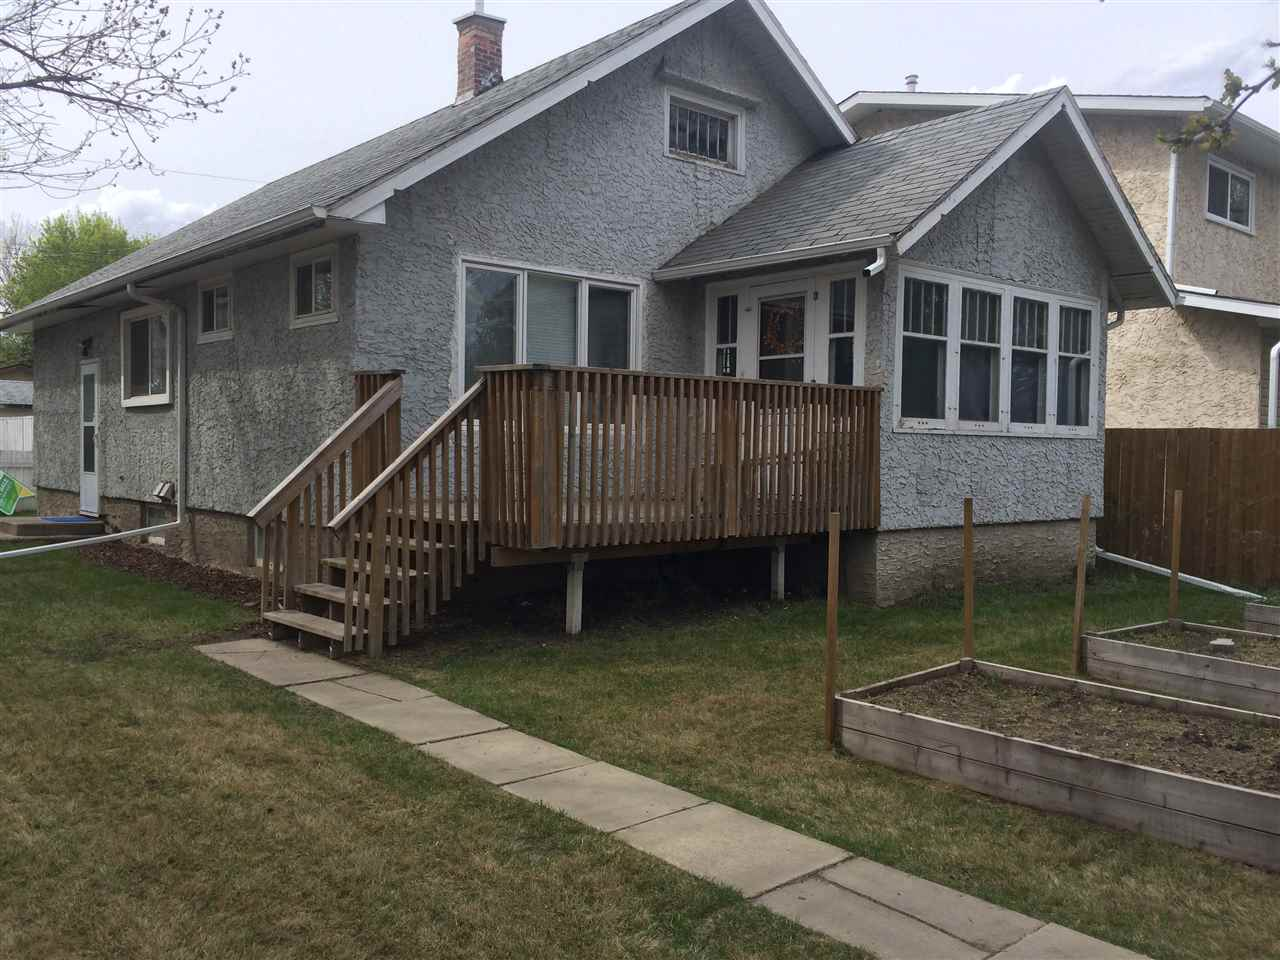 Main Photo: 12804 122 Street in Edmonton: Zone 01 House for sale : MLS® # E4063920